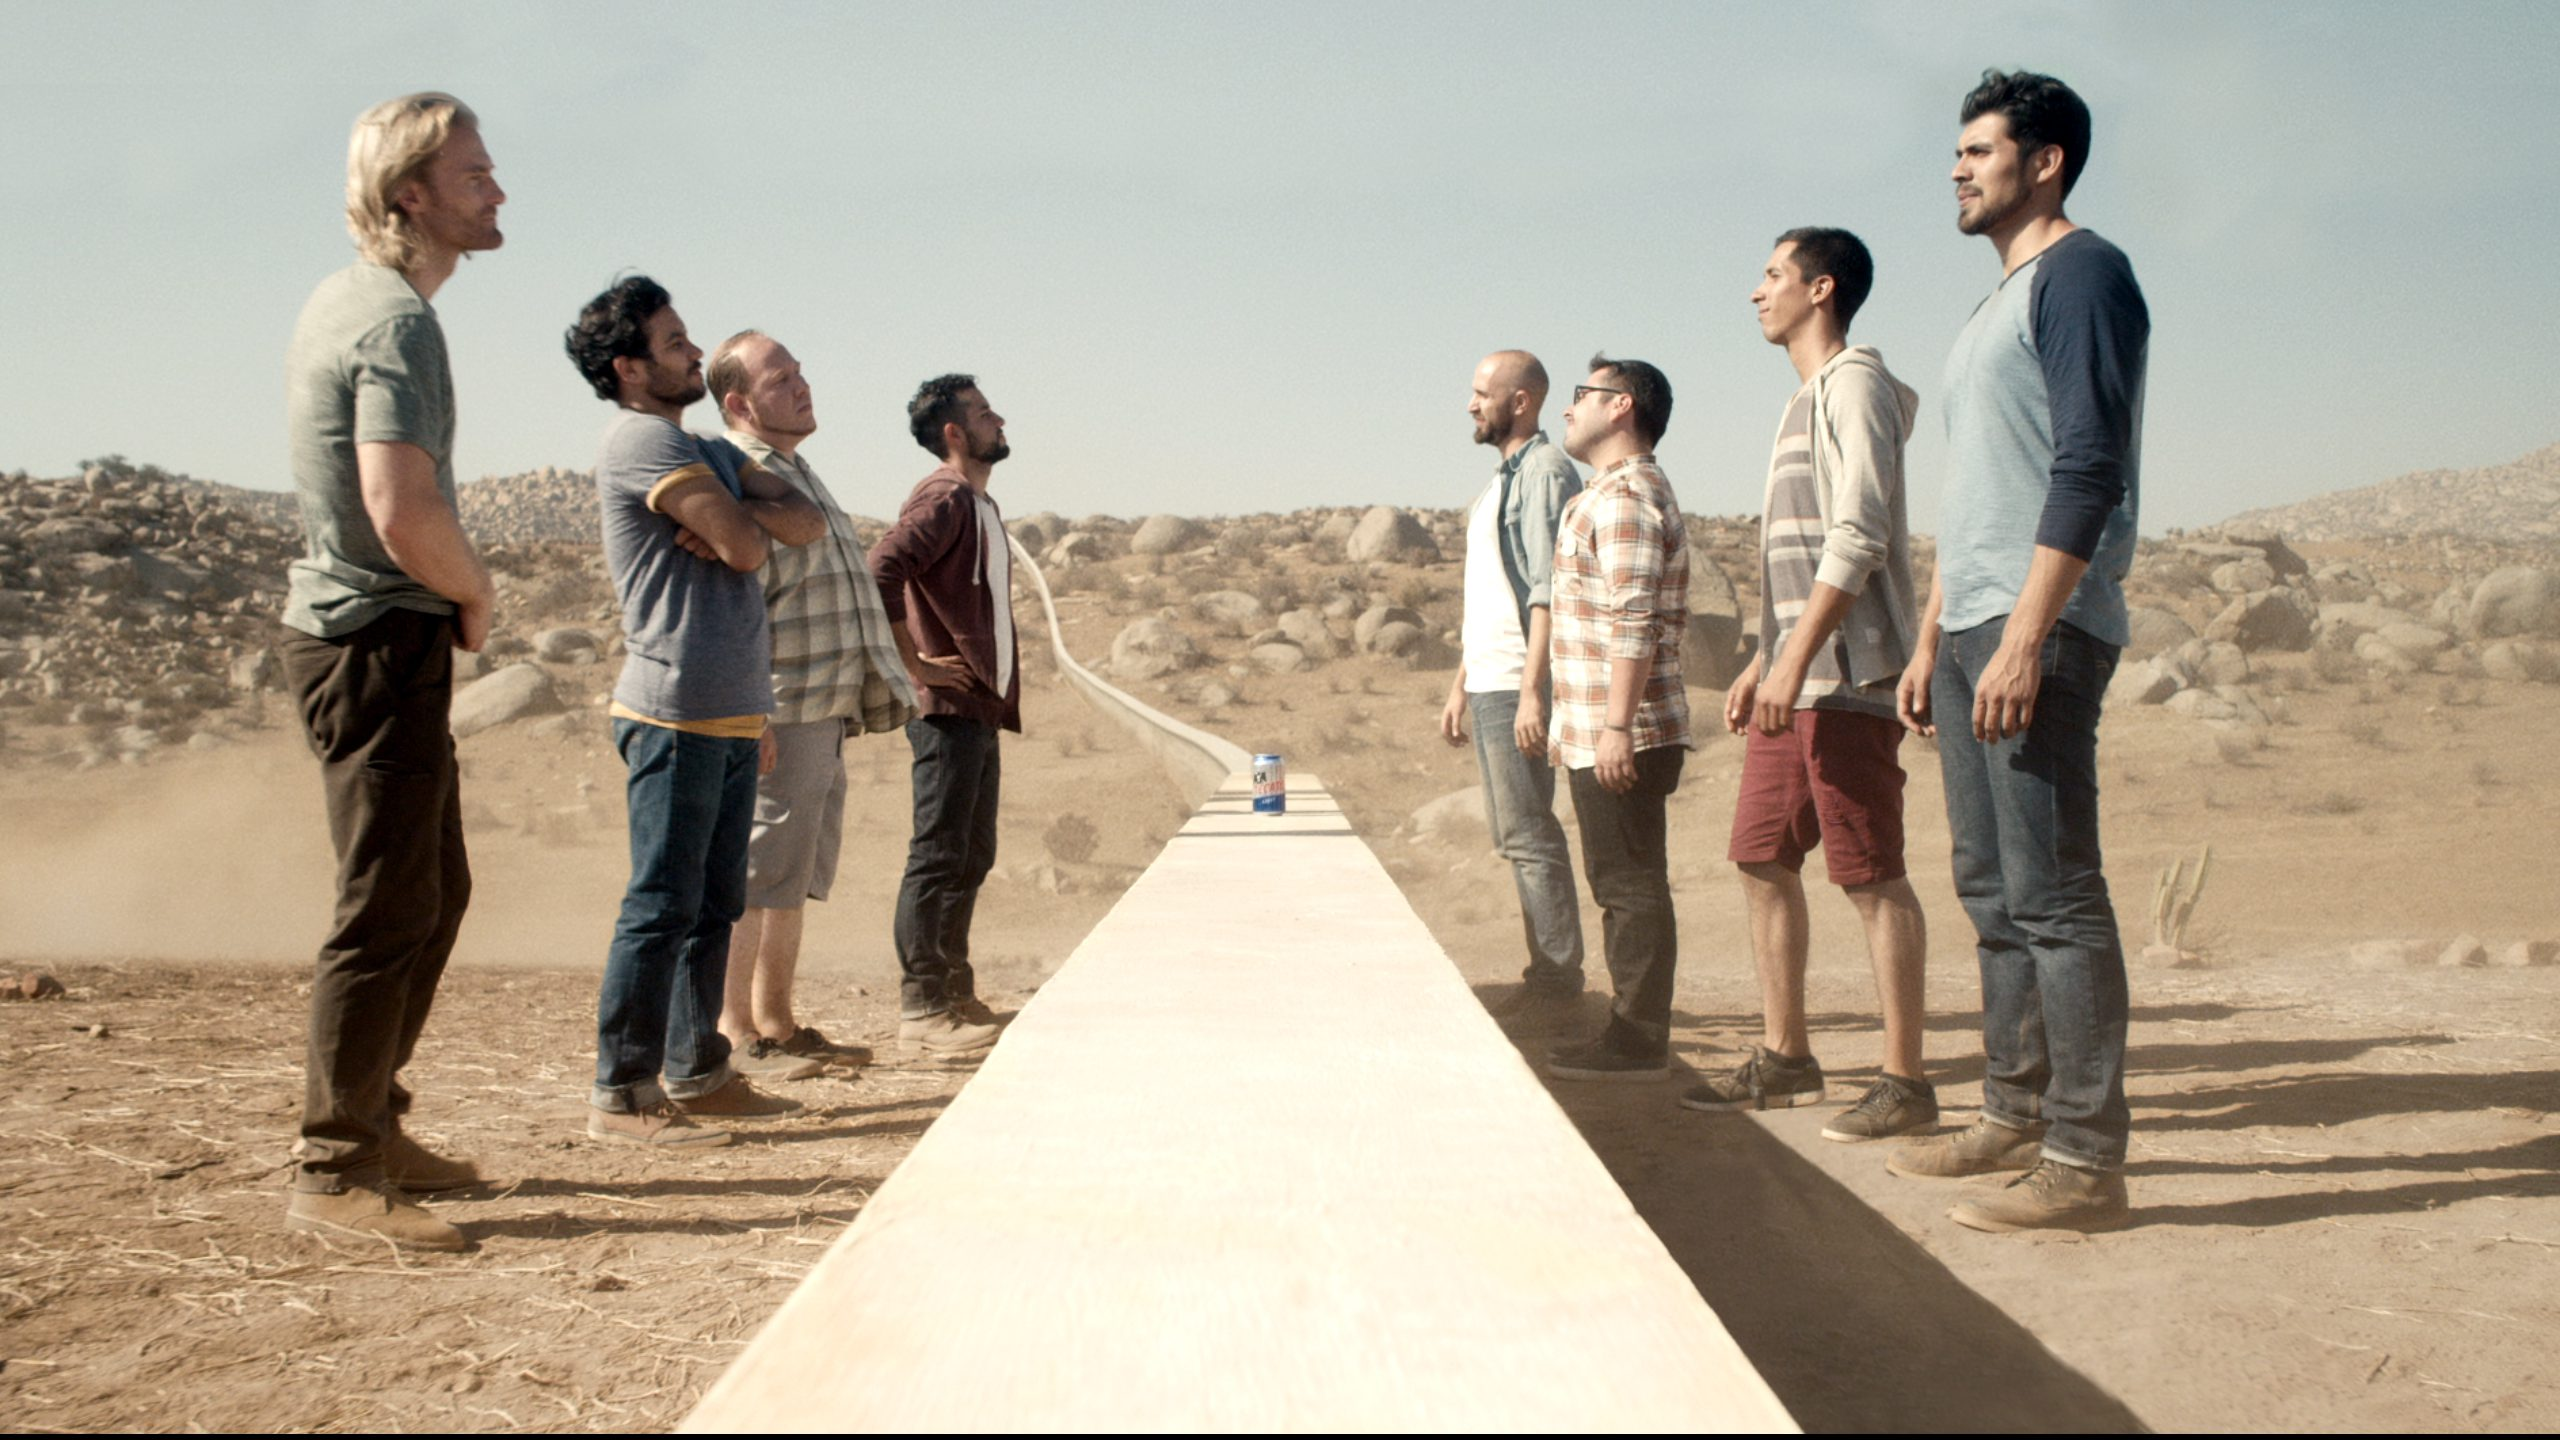 A scene from a Tecate beer TV ad that shows an encounter between beer drinkers in the US and Mexico.